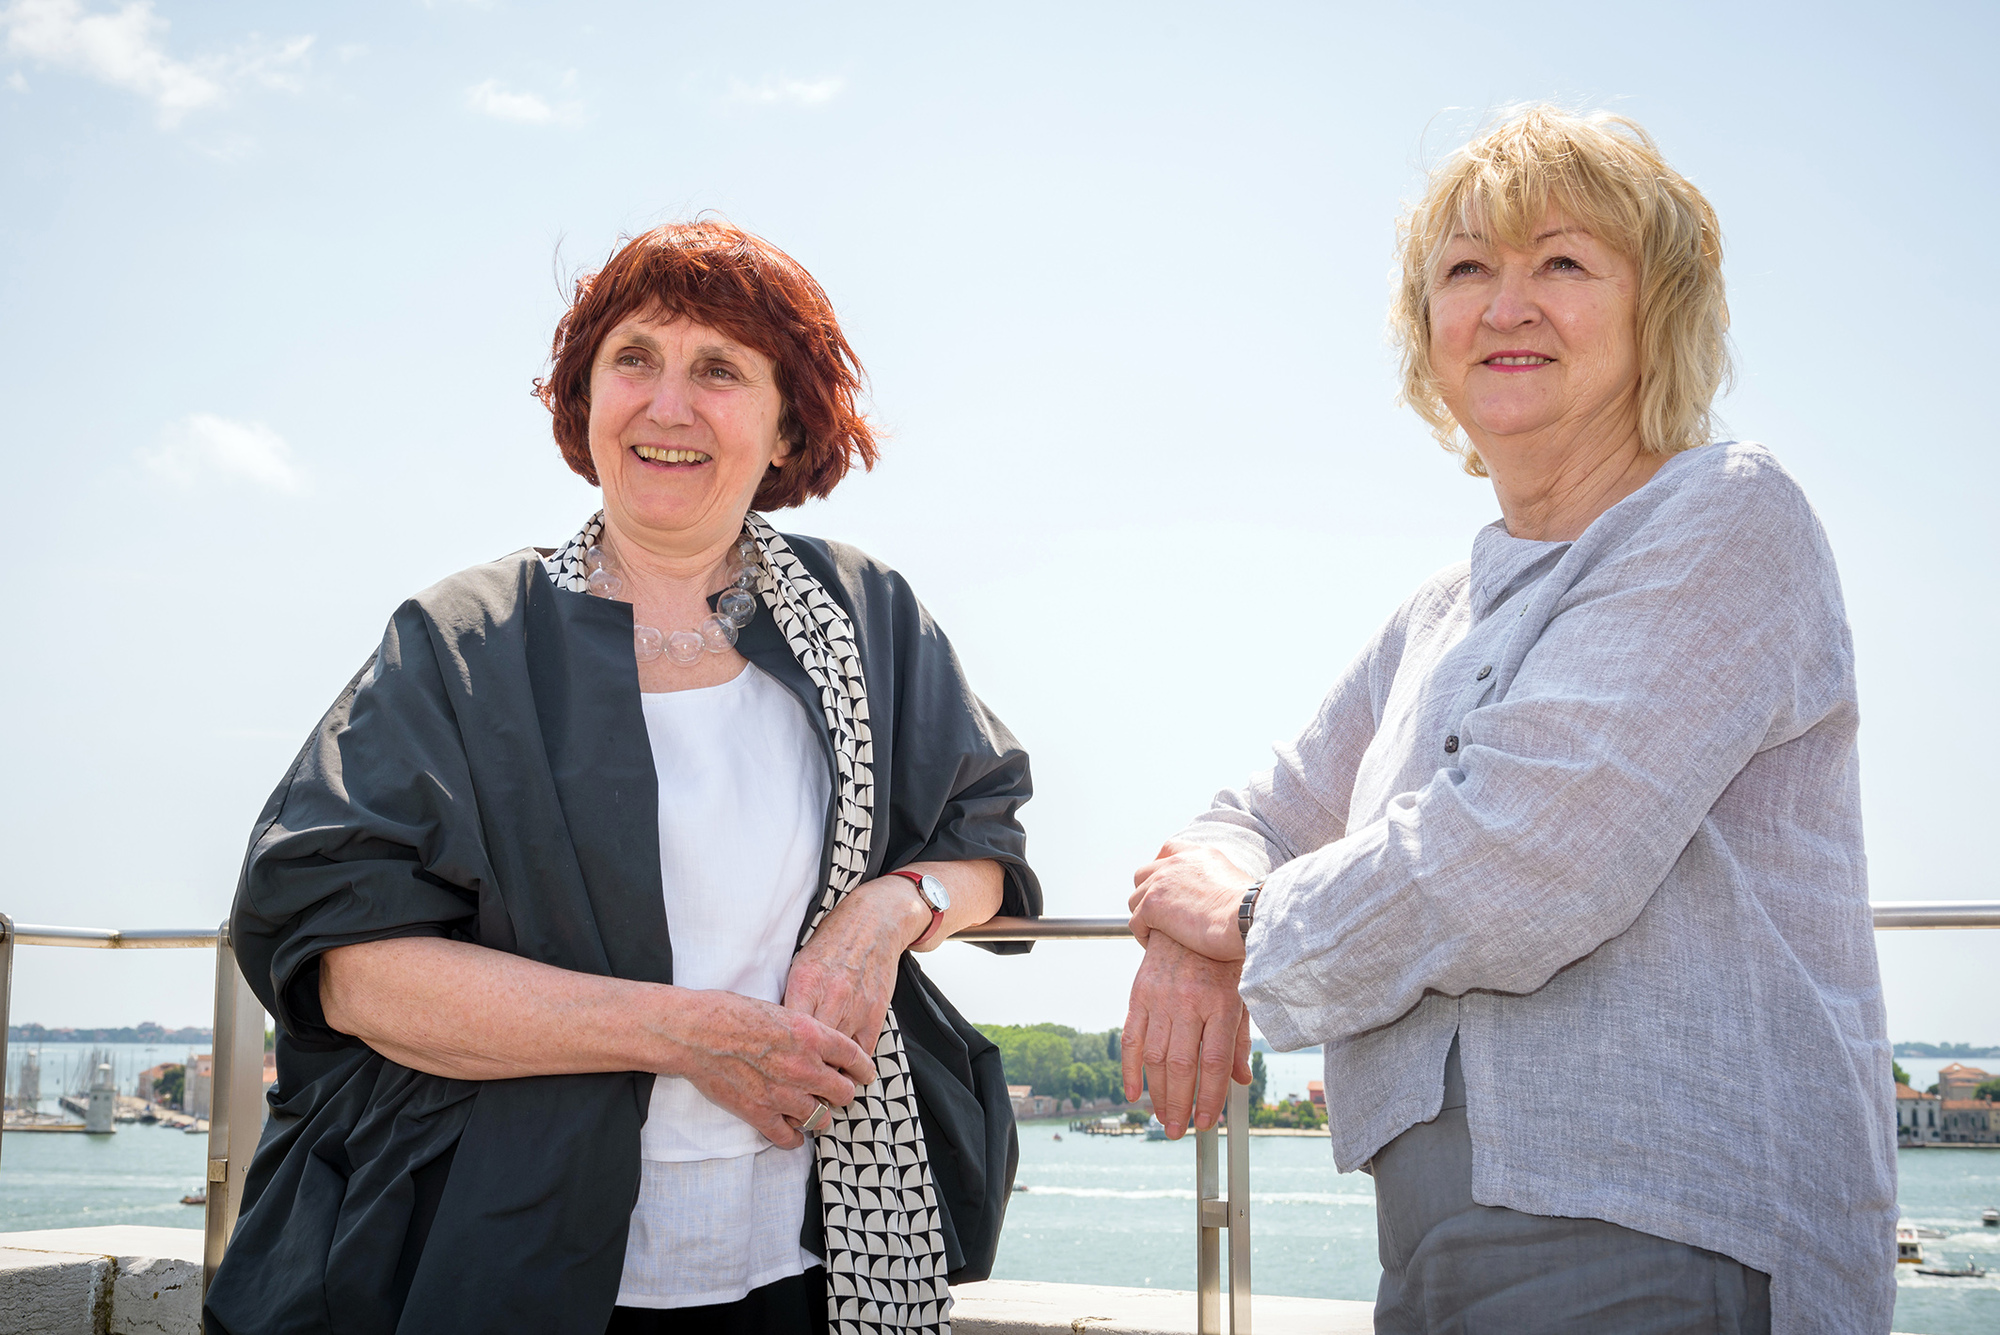 Shelley McNamara and Yvonne Farrell. Photograph by Andrea Avezzu, courtesy of the Venice Biennale